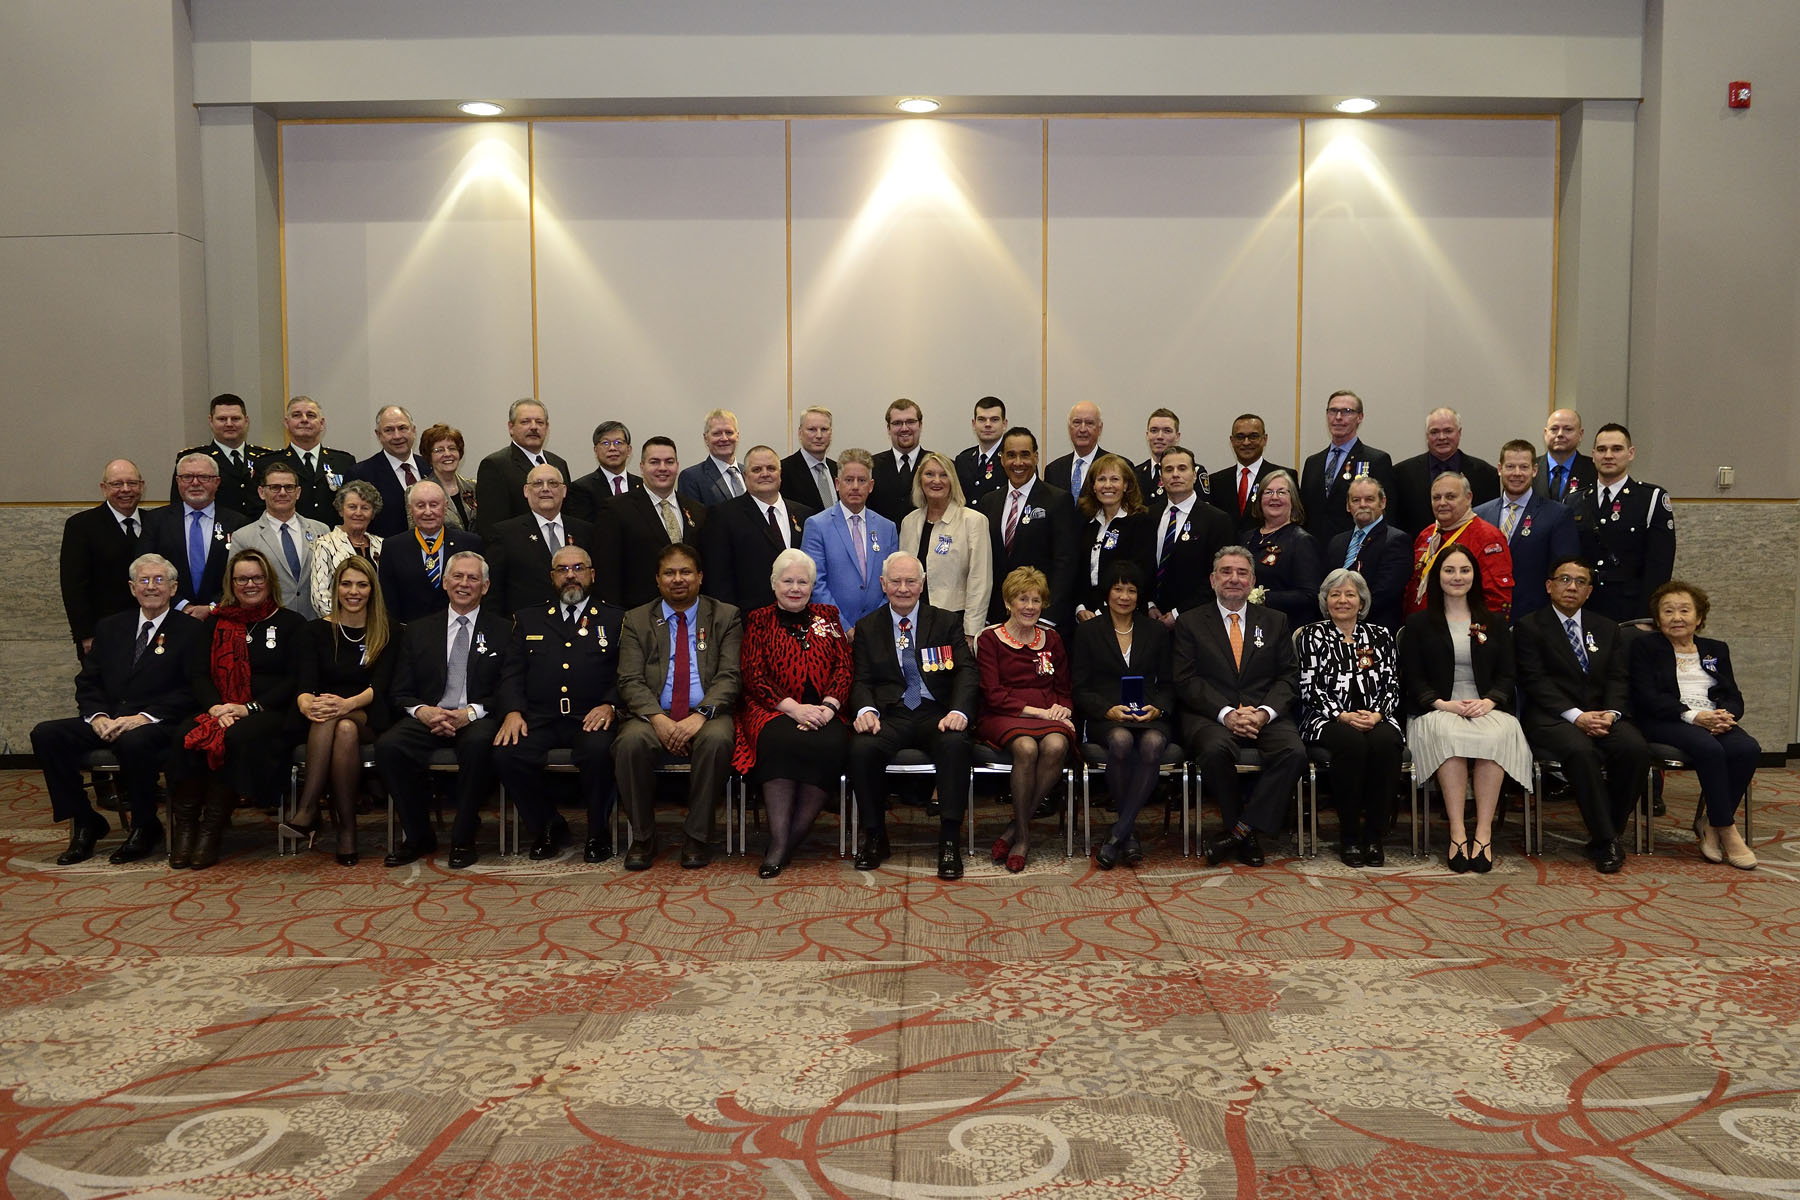 Group photo taken after the ceremony with Their Excellencies, the Lieutenant Governor of Ontario and the 46 recipients.